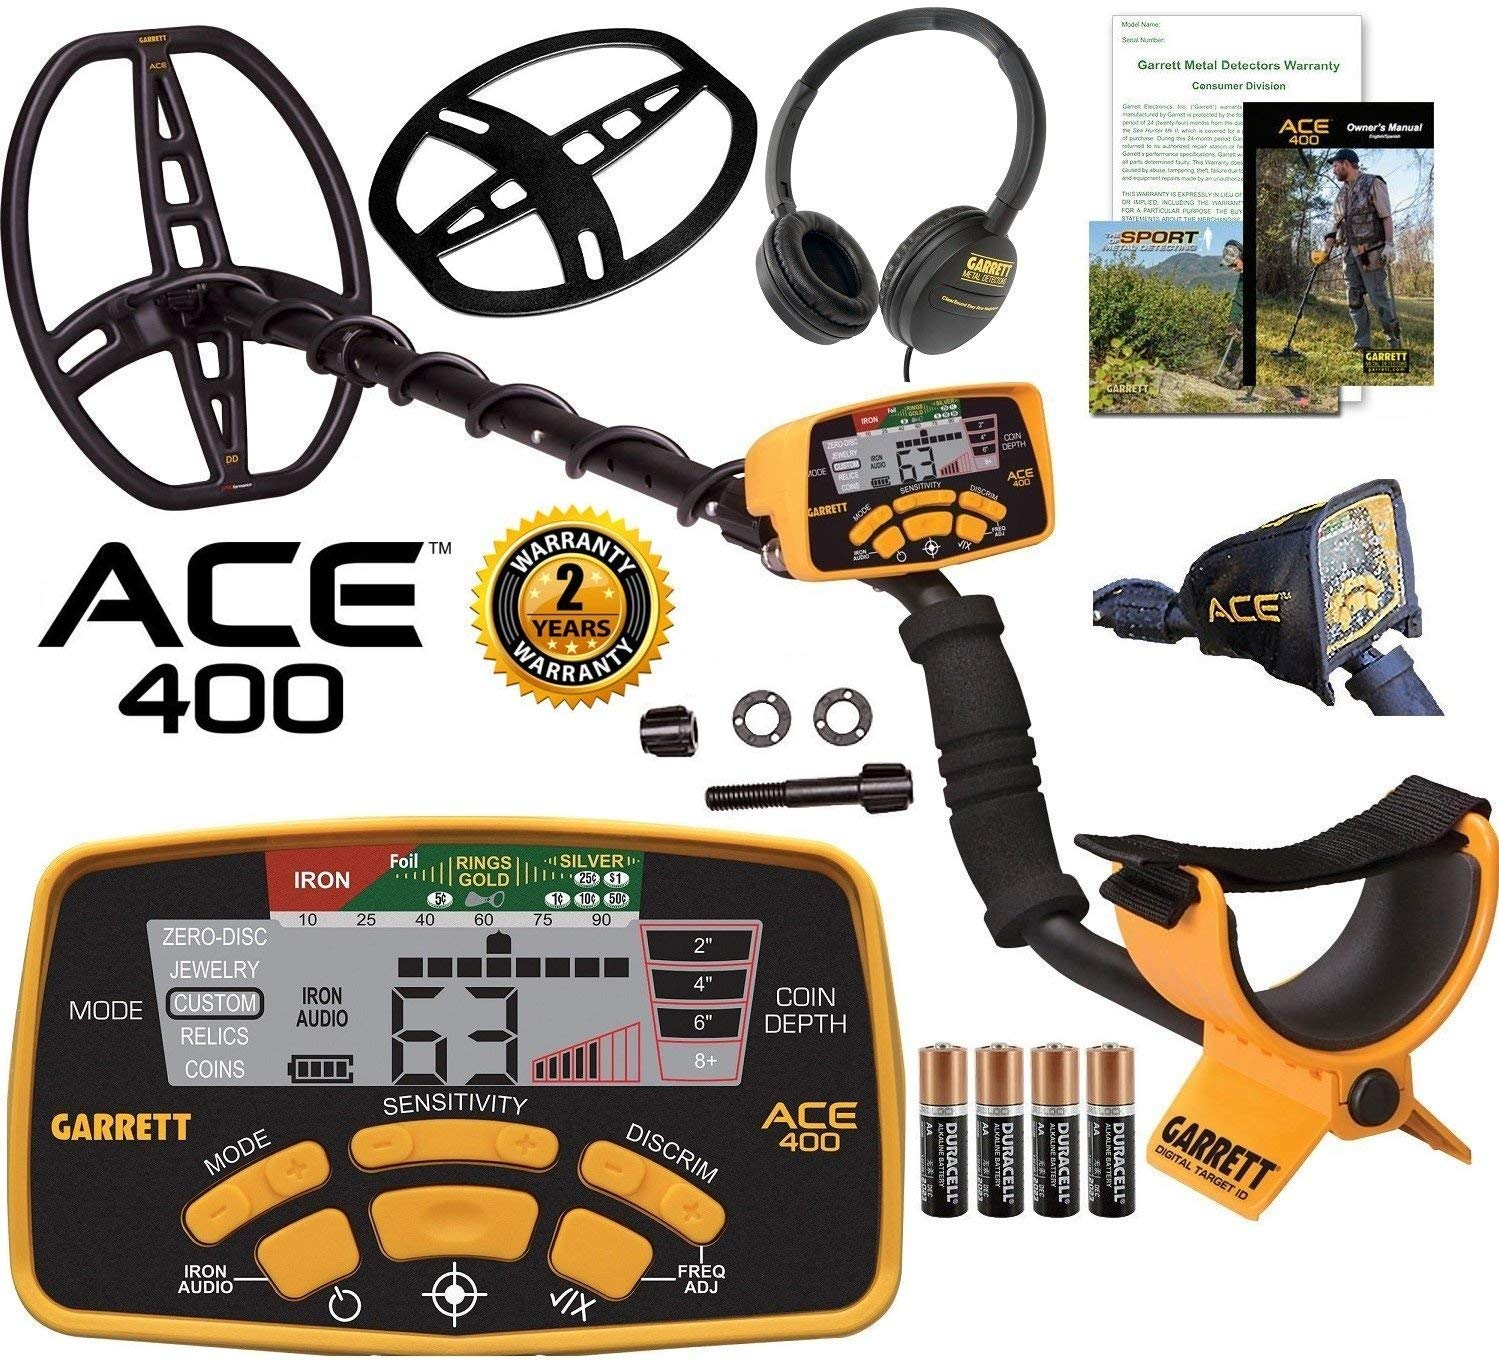 Garrett ACE 400 Best metal detector